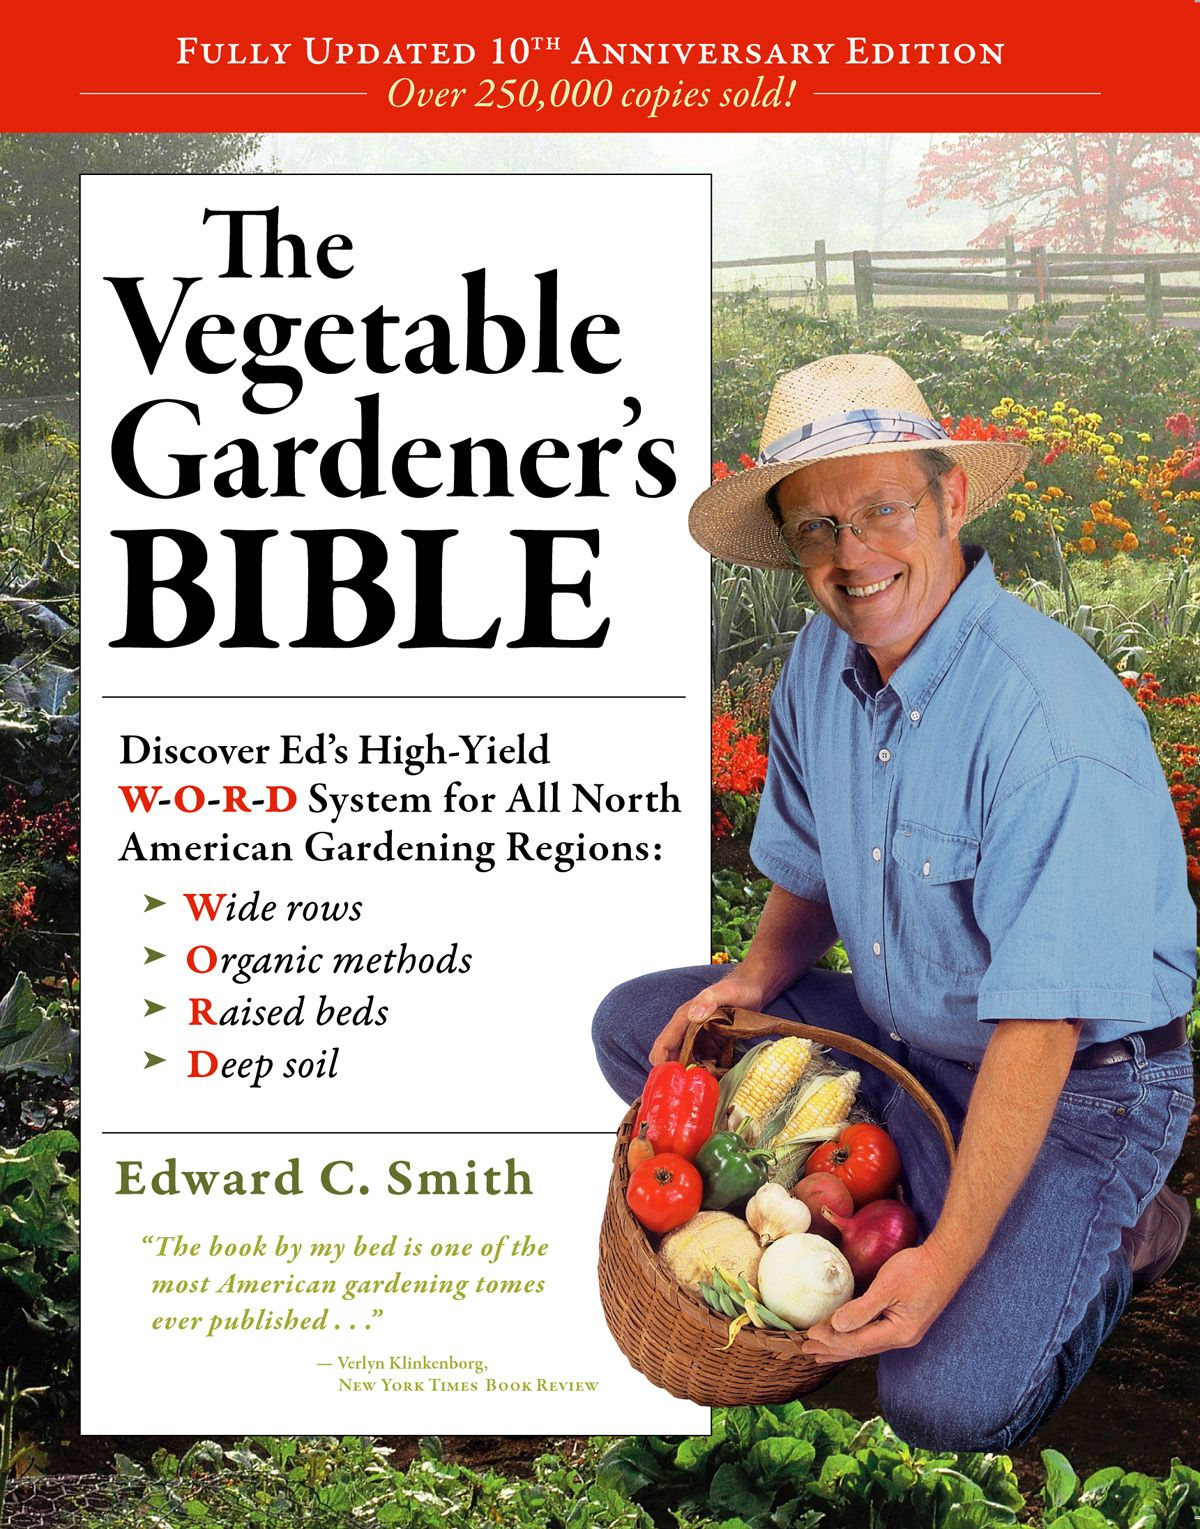 The Vegetable Gardener's Bible, 2nd Edition By: Edward C. Smith